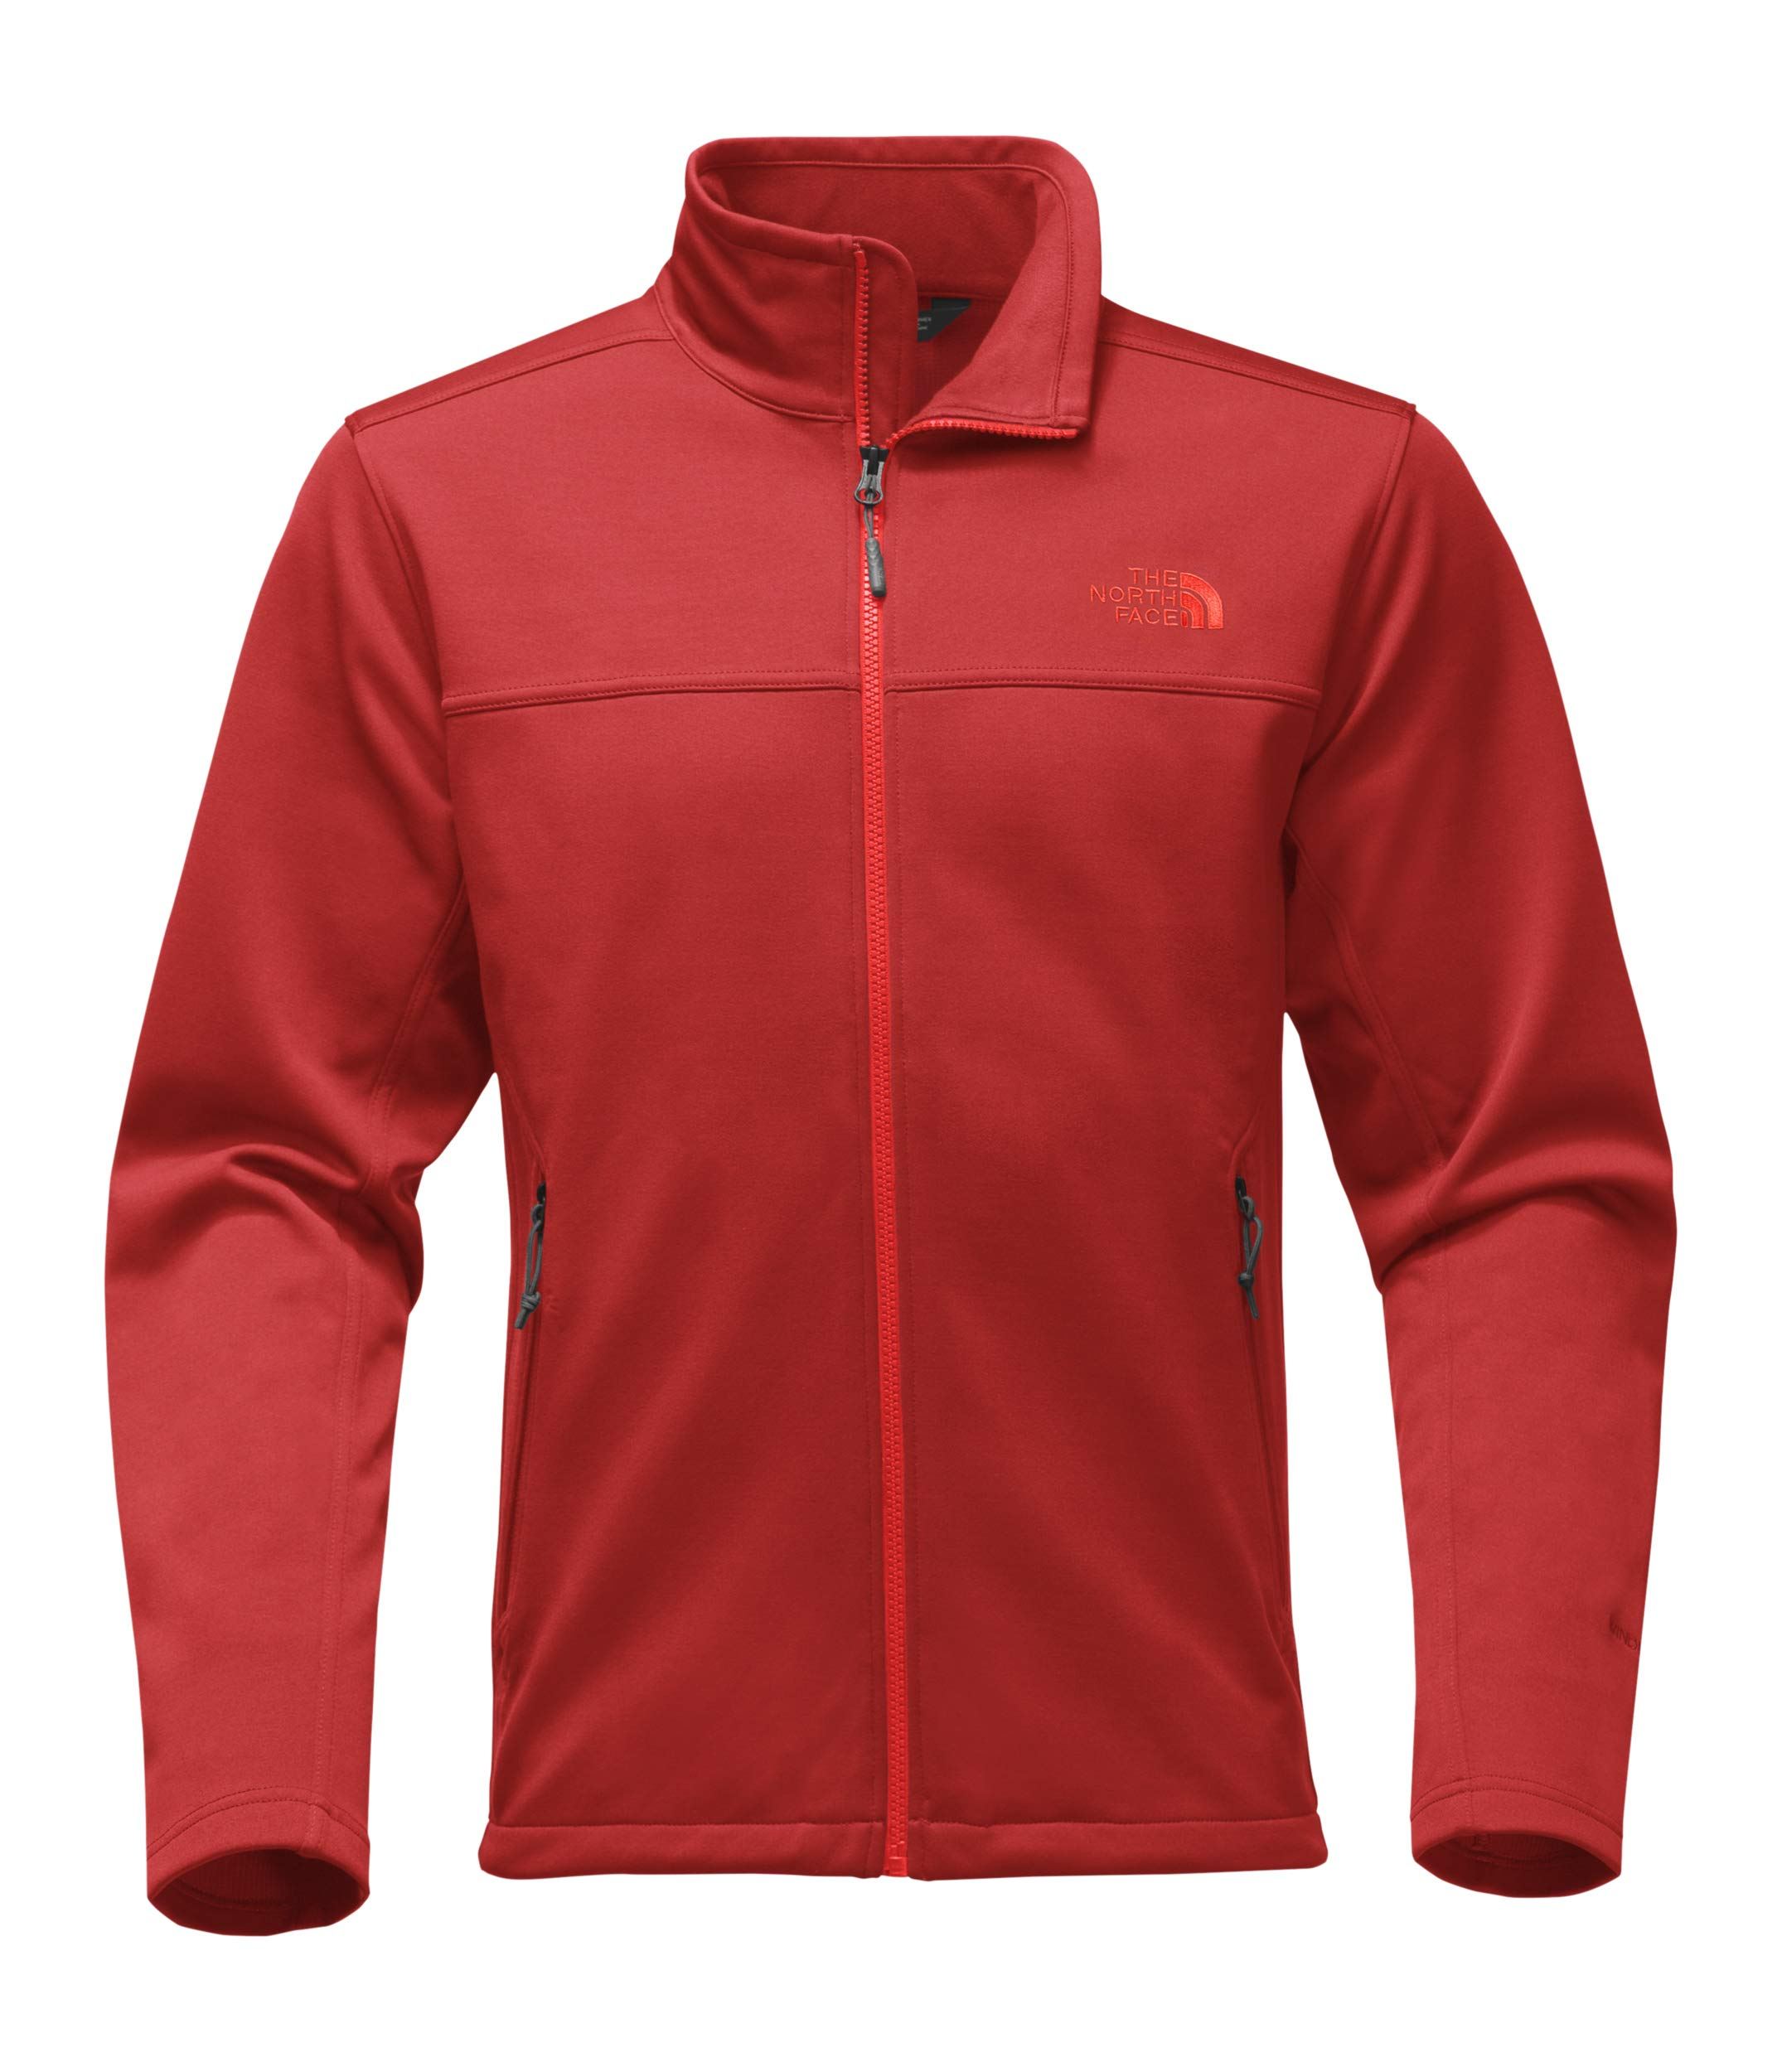 The North Face Men's Apex Canyonwall Jacket - Rage Red & Rage Red - XL by The North Face